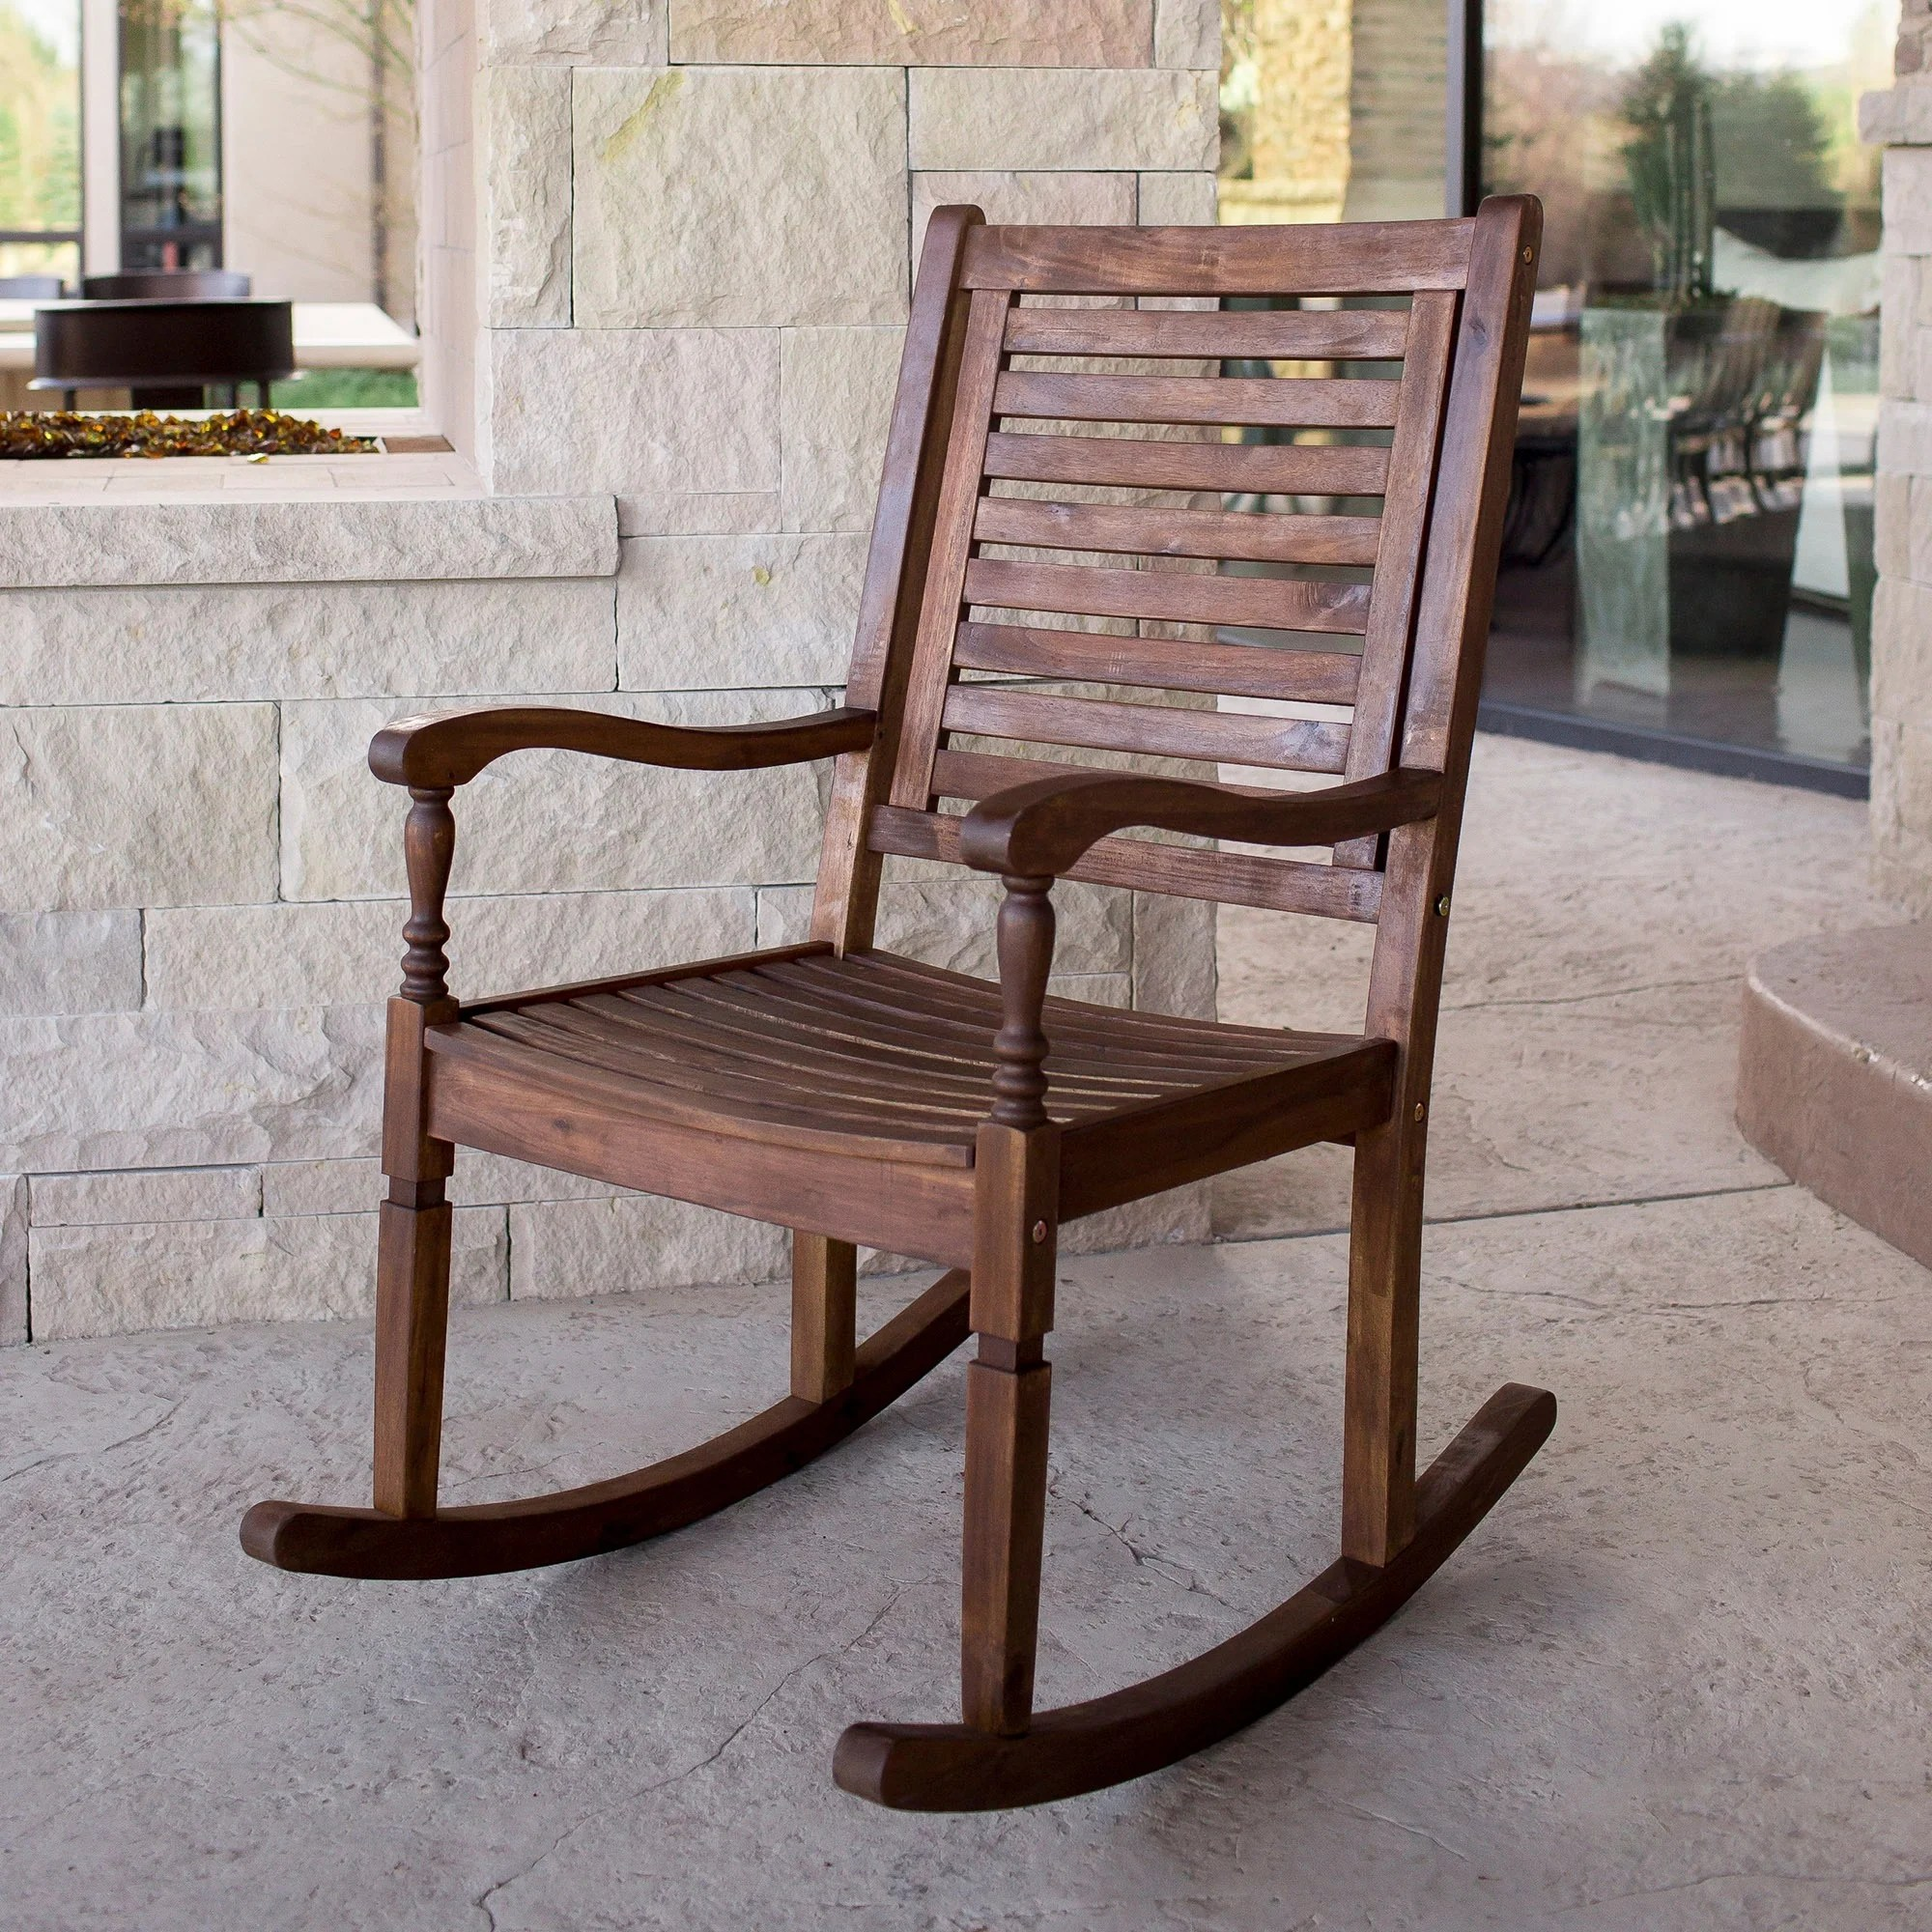 overstock com chairs barcelona chair used shop solid acacia wood rocking patio dark brown